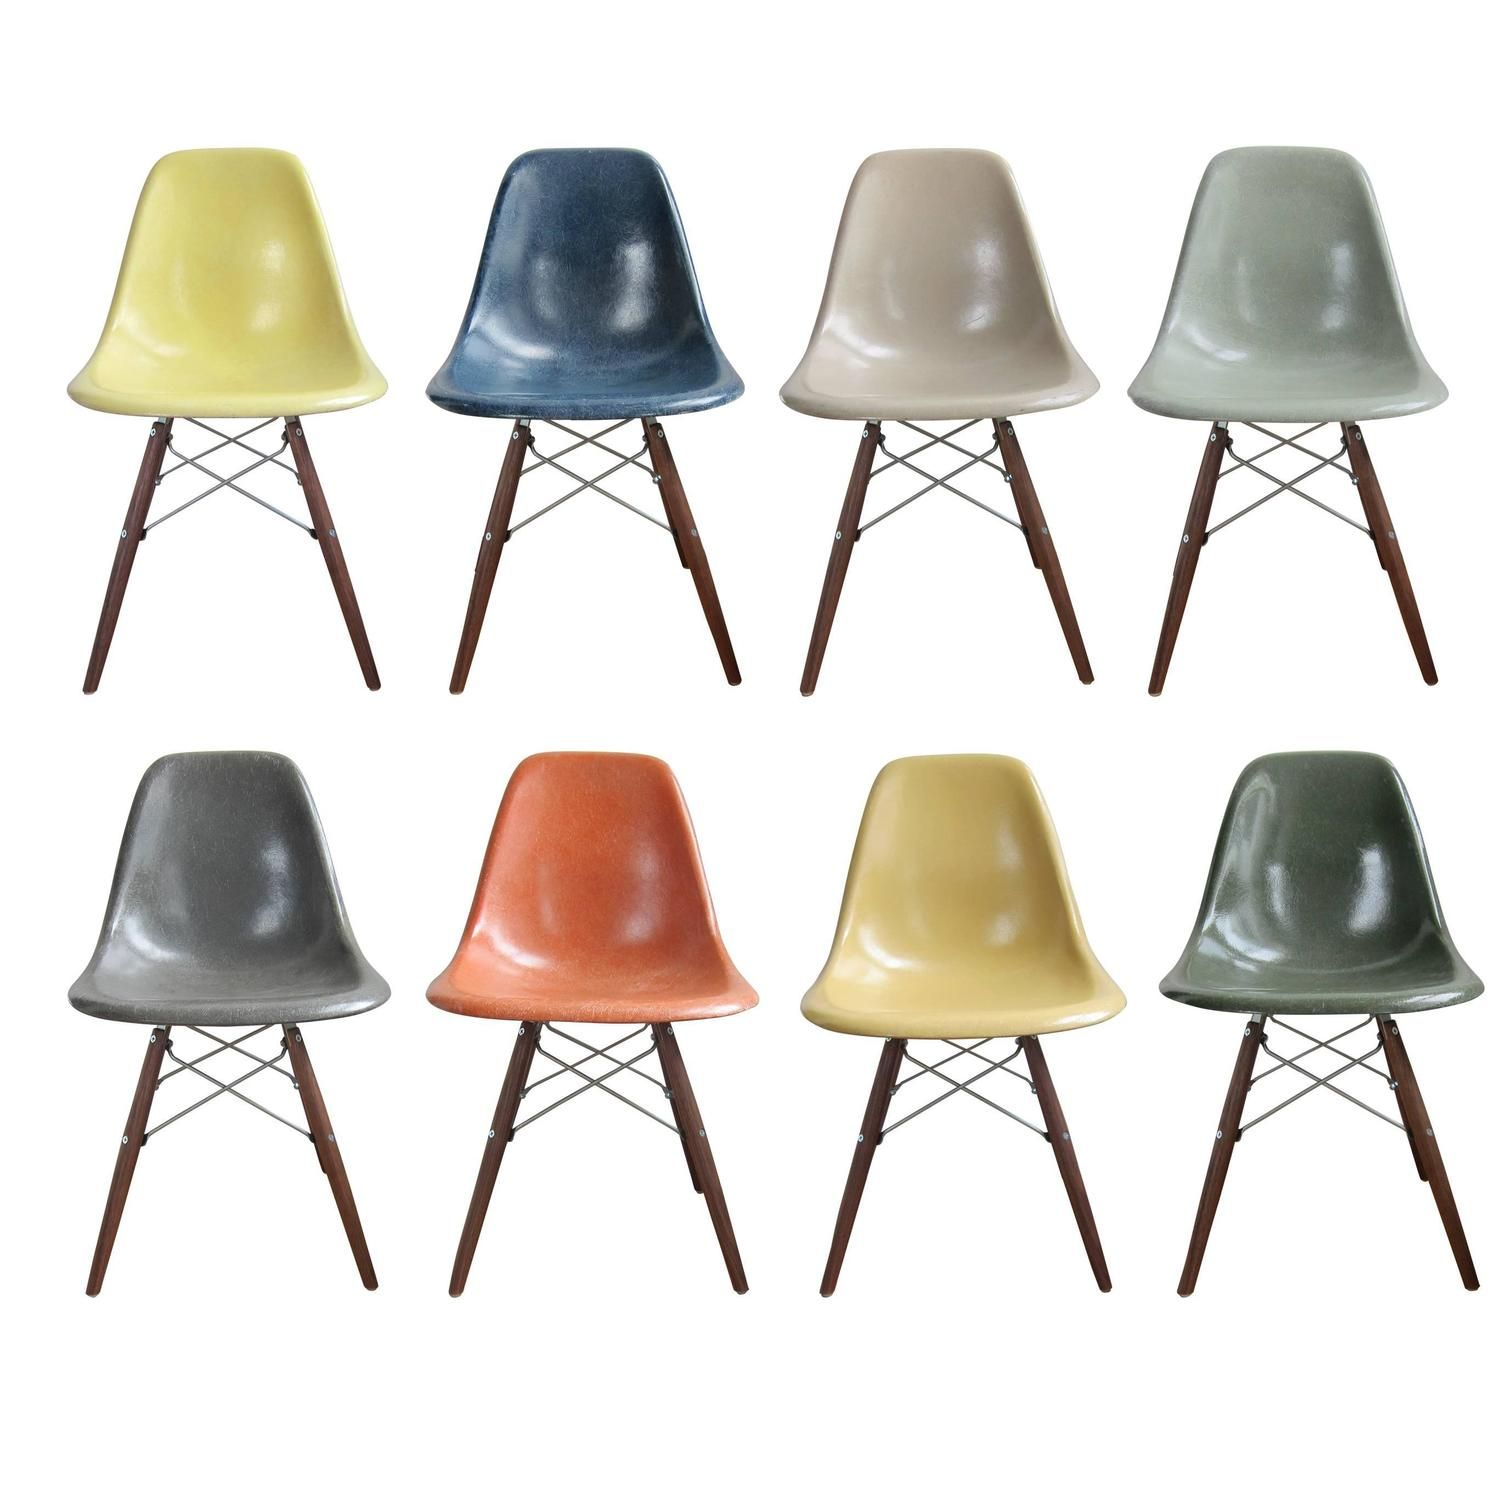 Eight Multicolored Herman Miller Eames Dining Chairs Eames Dining Eames Dining Chair Eames Chair Dining Room